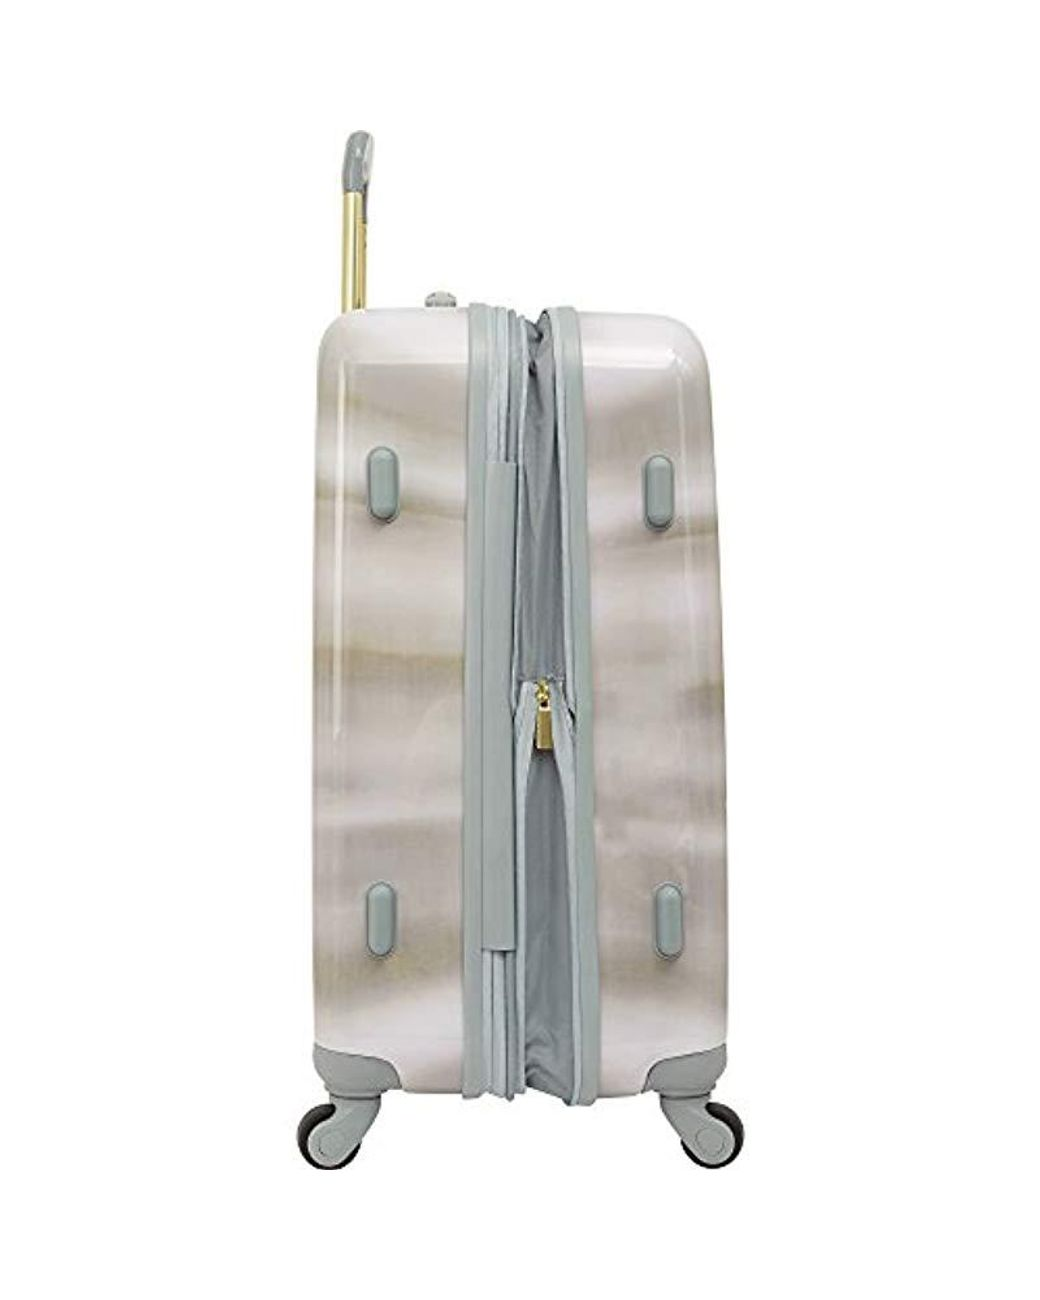 28 Inch Expandable Travel Bag Suitcase with Rolling Wheels and Hard Case Vince Camuto Hardside Spinner Luggage